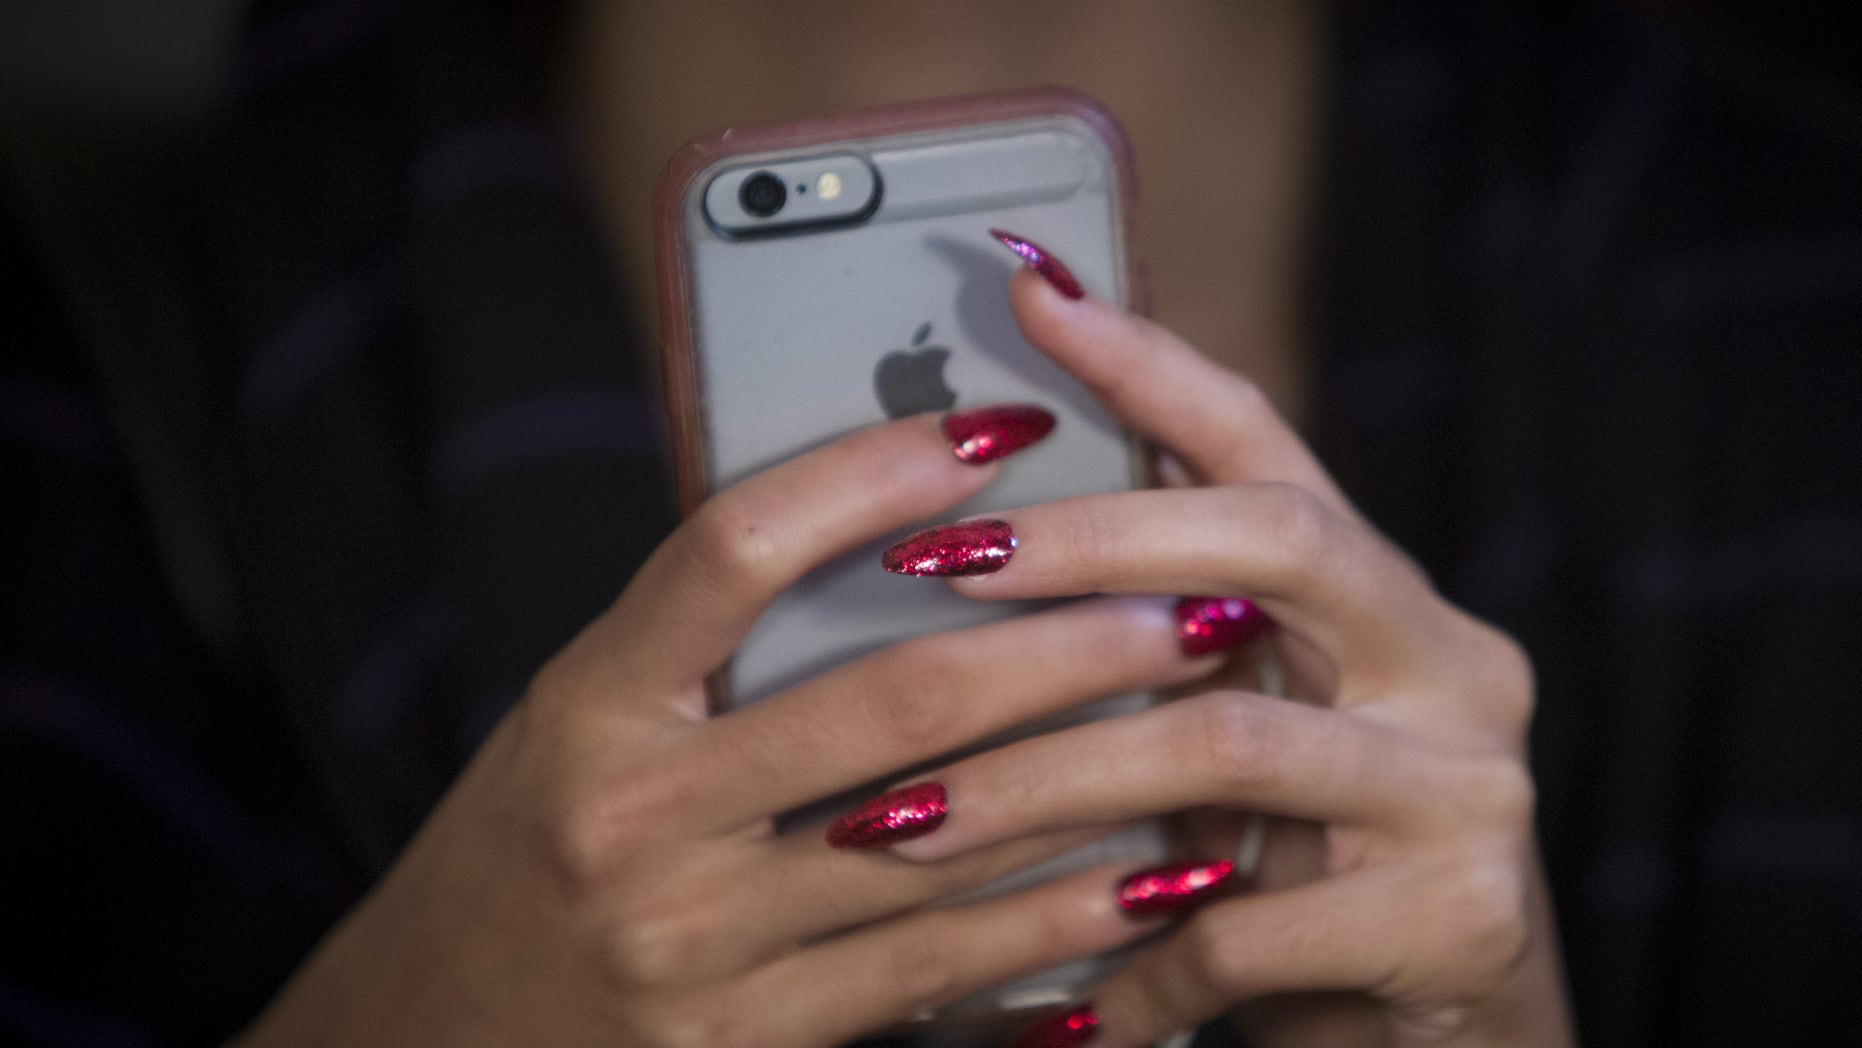 A model's nails are seen as she uses her cell phone backstage before the Betsey Johnson Spring/Summer 2016 collection presentation during New York Fashion Week in New York, September 11, 2015.